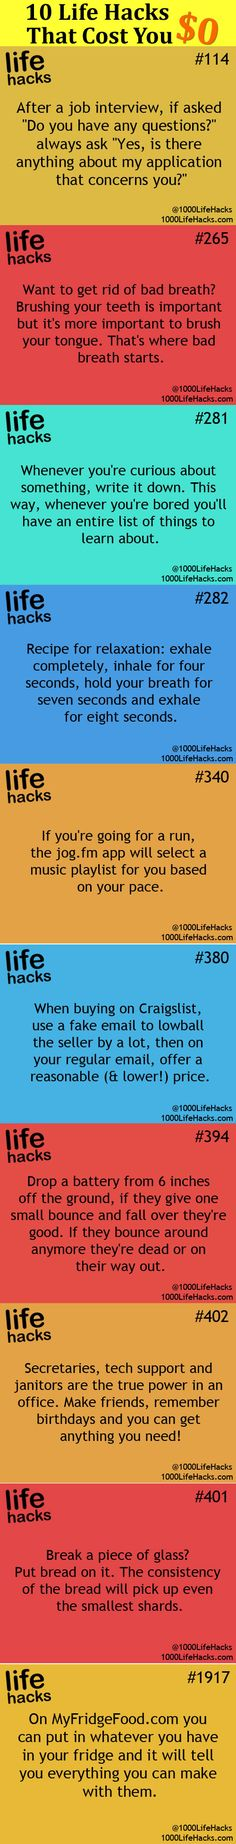 Those Life Hacks Can't Change Your Life Forever, But It Will Make You Happy…